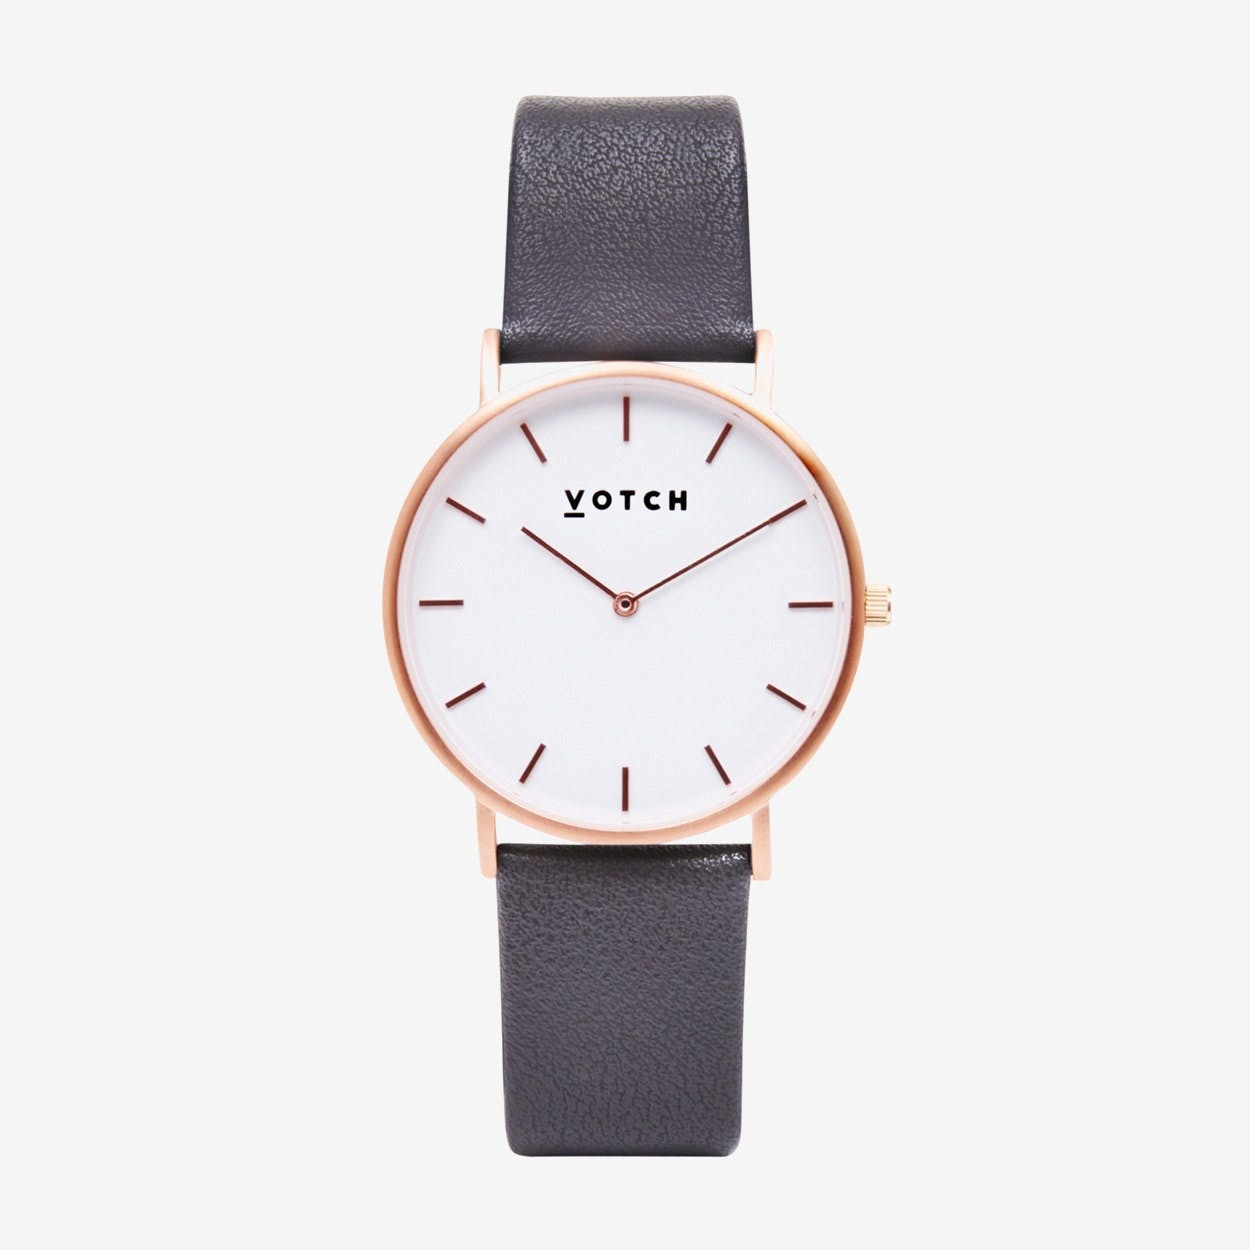 Classic Watch in Rose Gold with White Face and Dark Grey Vegan Leather Strap, 38mm - Votch